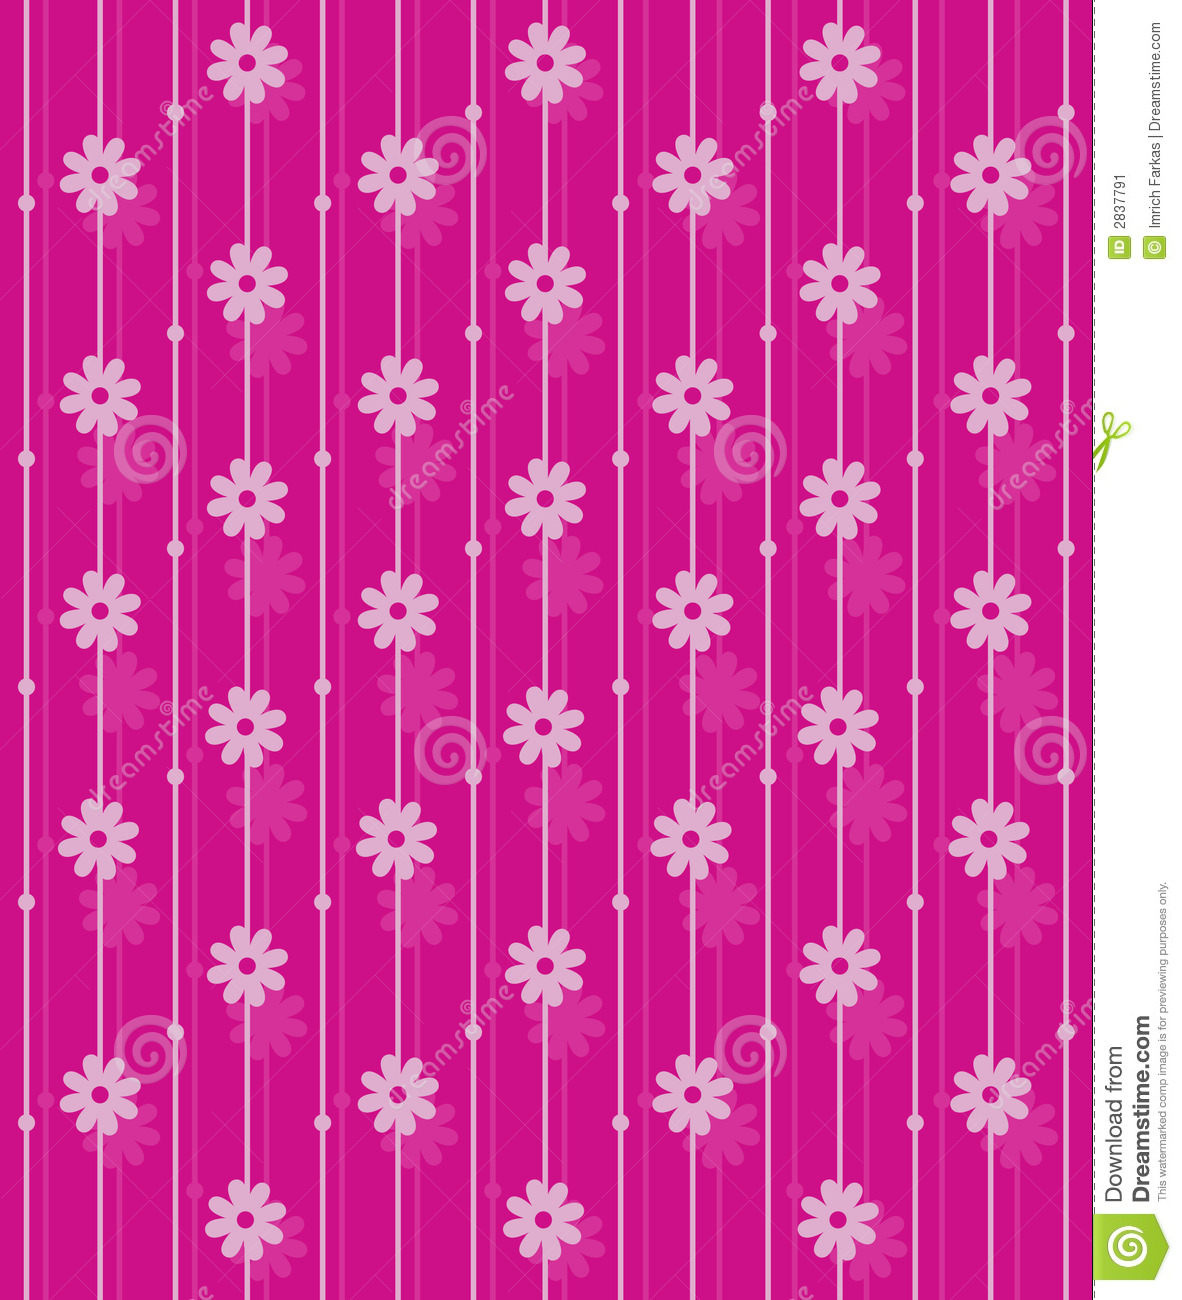 wallpaper pattern pink - photo #35